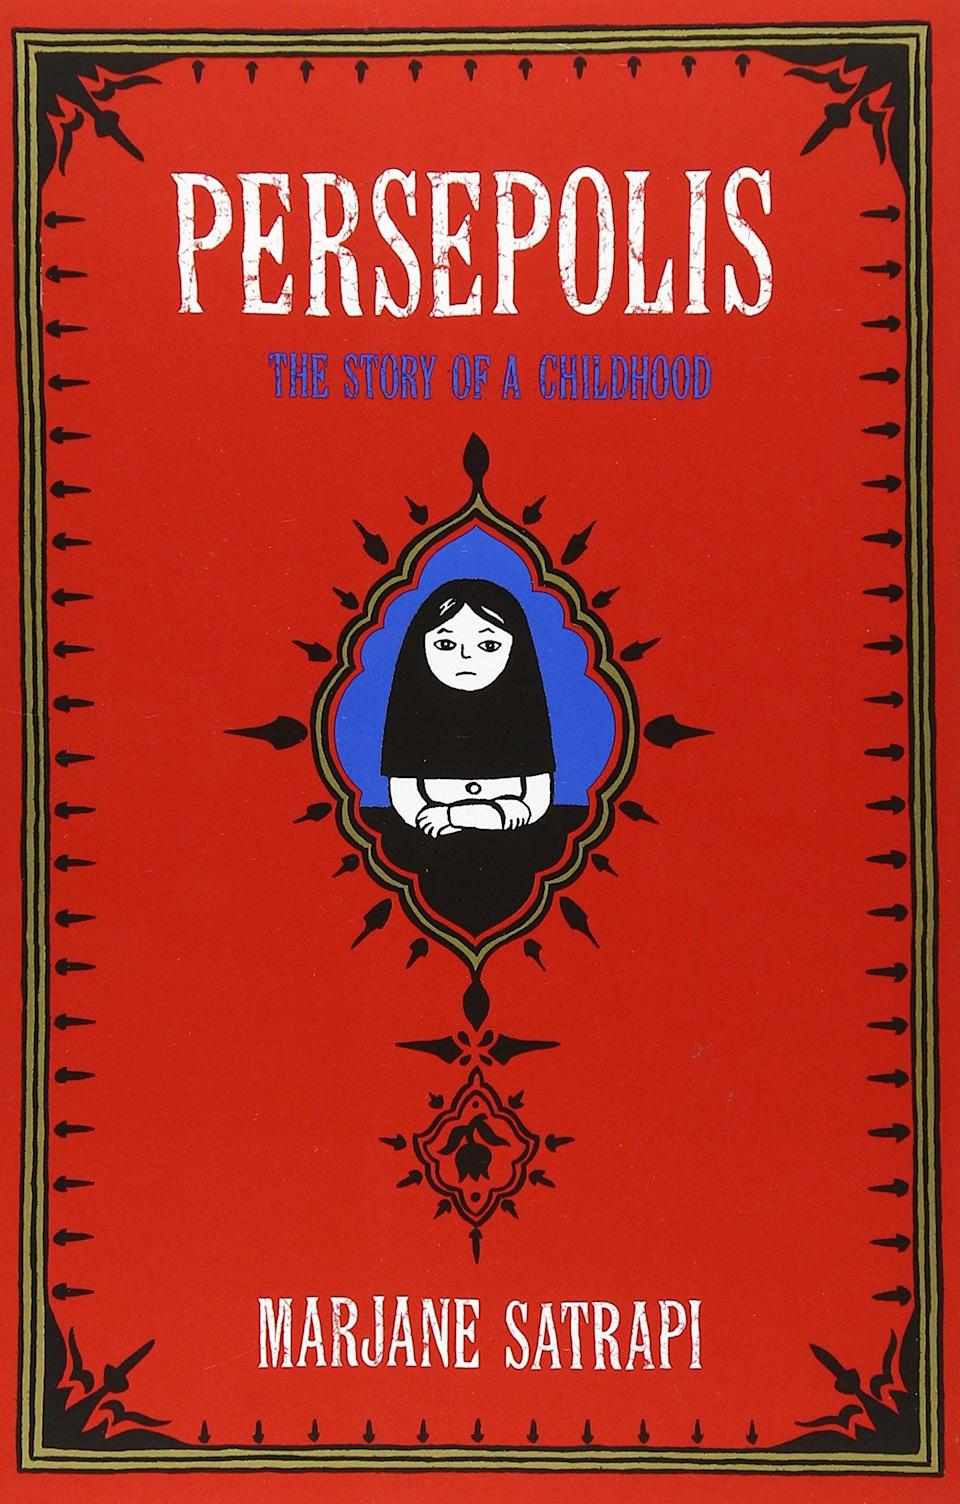 "<p><a href=""https://www.popsugar.com/buy?url=https%3A%2F%2Fwww.amazon.com%2FPersepolis-Childhood-Pantheon-Graphic-Novels%2Fdp%2F037571457X%2Fref%3Dtmm_pap_swatch_0%3F_encoding%3DUTF8%26qid%3D1488996360%26sr%3D1-1&p_name=%3Cb%3EPersepolis%3C%2Fb%3E%20by%20Marjane%20Satrapi&retailer=amazon.com&evar1=tres%3Auk&evar9=43250262&evar98=https%3A%2F%2Fwww.popsugar.com%2Flove%2Fphoto-gallery%2F43250262%2Fimage%2F43278352%2FPersepolis-Marjane-Satrapi&list1=books%2Cwomen%2Creading%2Cinternational%20womens%20day%2Cwomens%20history%20month&prop13=api&pdata=1"" class=""link rapid-noclick-resp"" rel=""nofollow noopener"" target=""_blank"" data-ylk=""slk:Persepolis by Marjane Satrapi""><b>Persepolis</b> by Marjane Satrapi</a></p>"